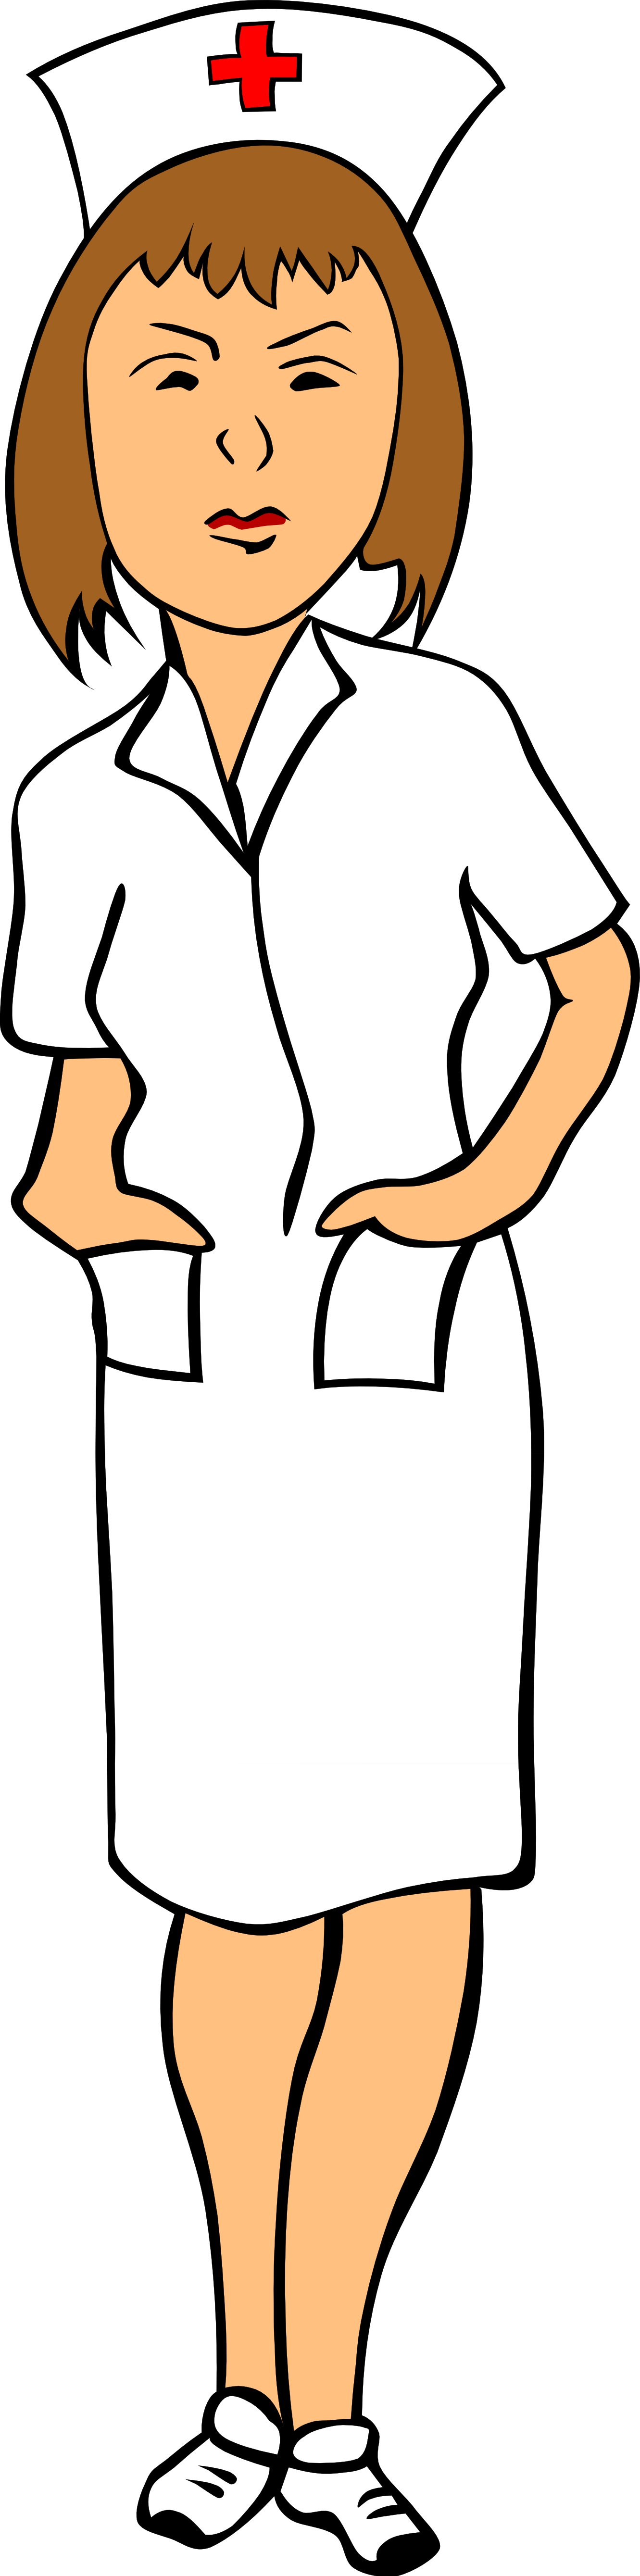 Nurse clipart patient history. Free midwife cliparts download